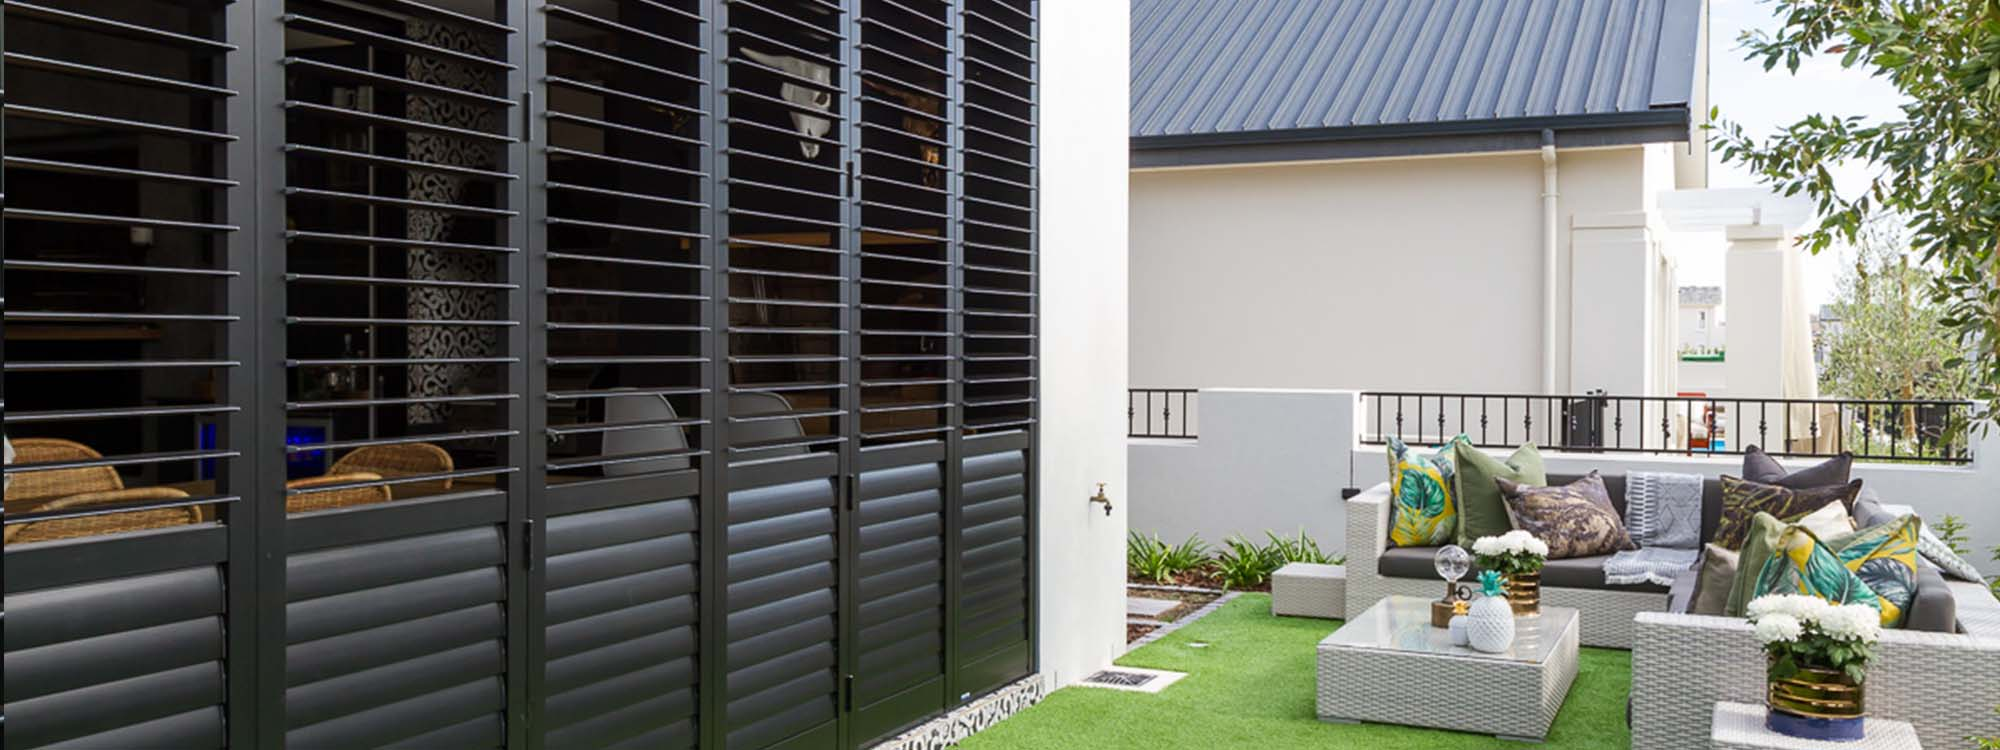 Security-shutters-patio-Swanepoel-exterior